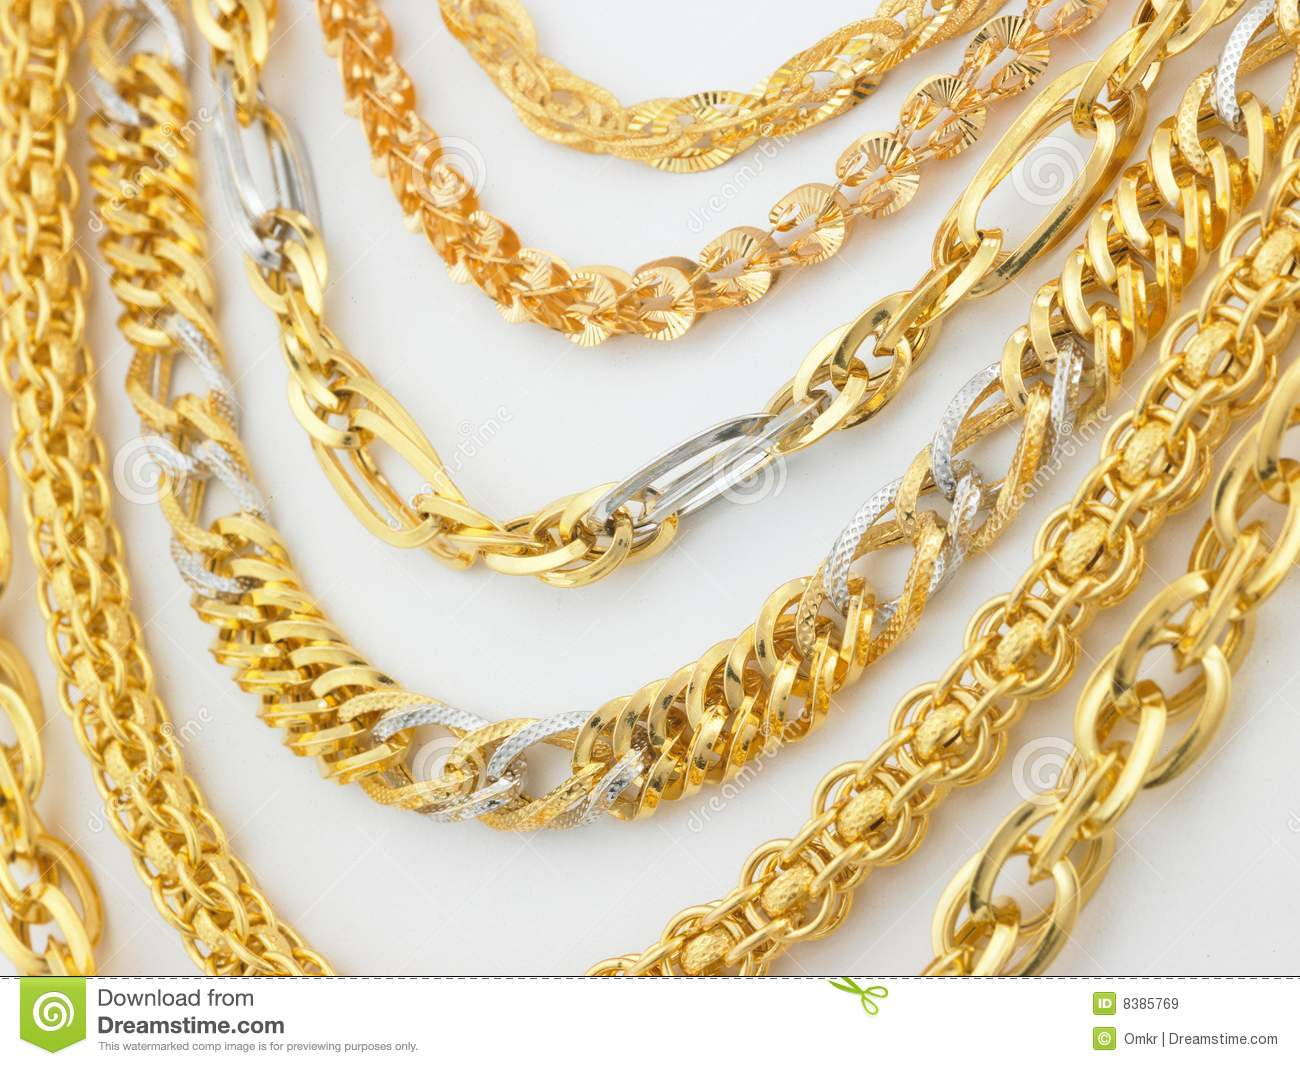 cable chains in chain toscani jewelry solid gold necklace italian